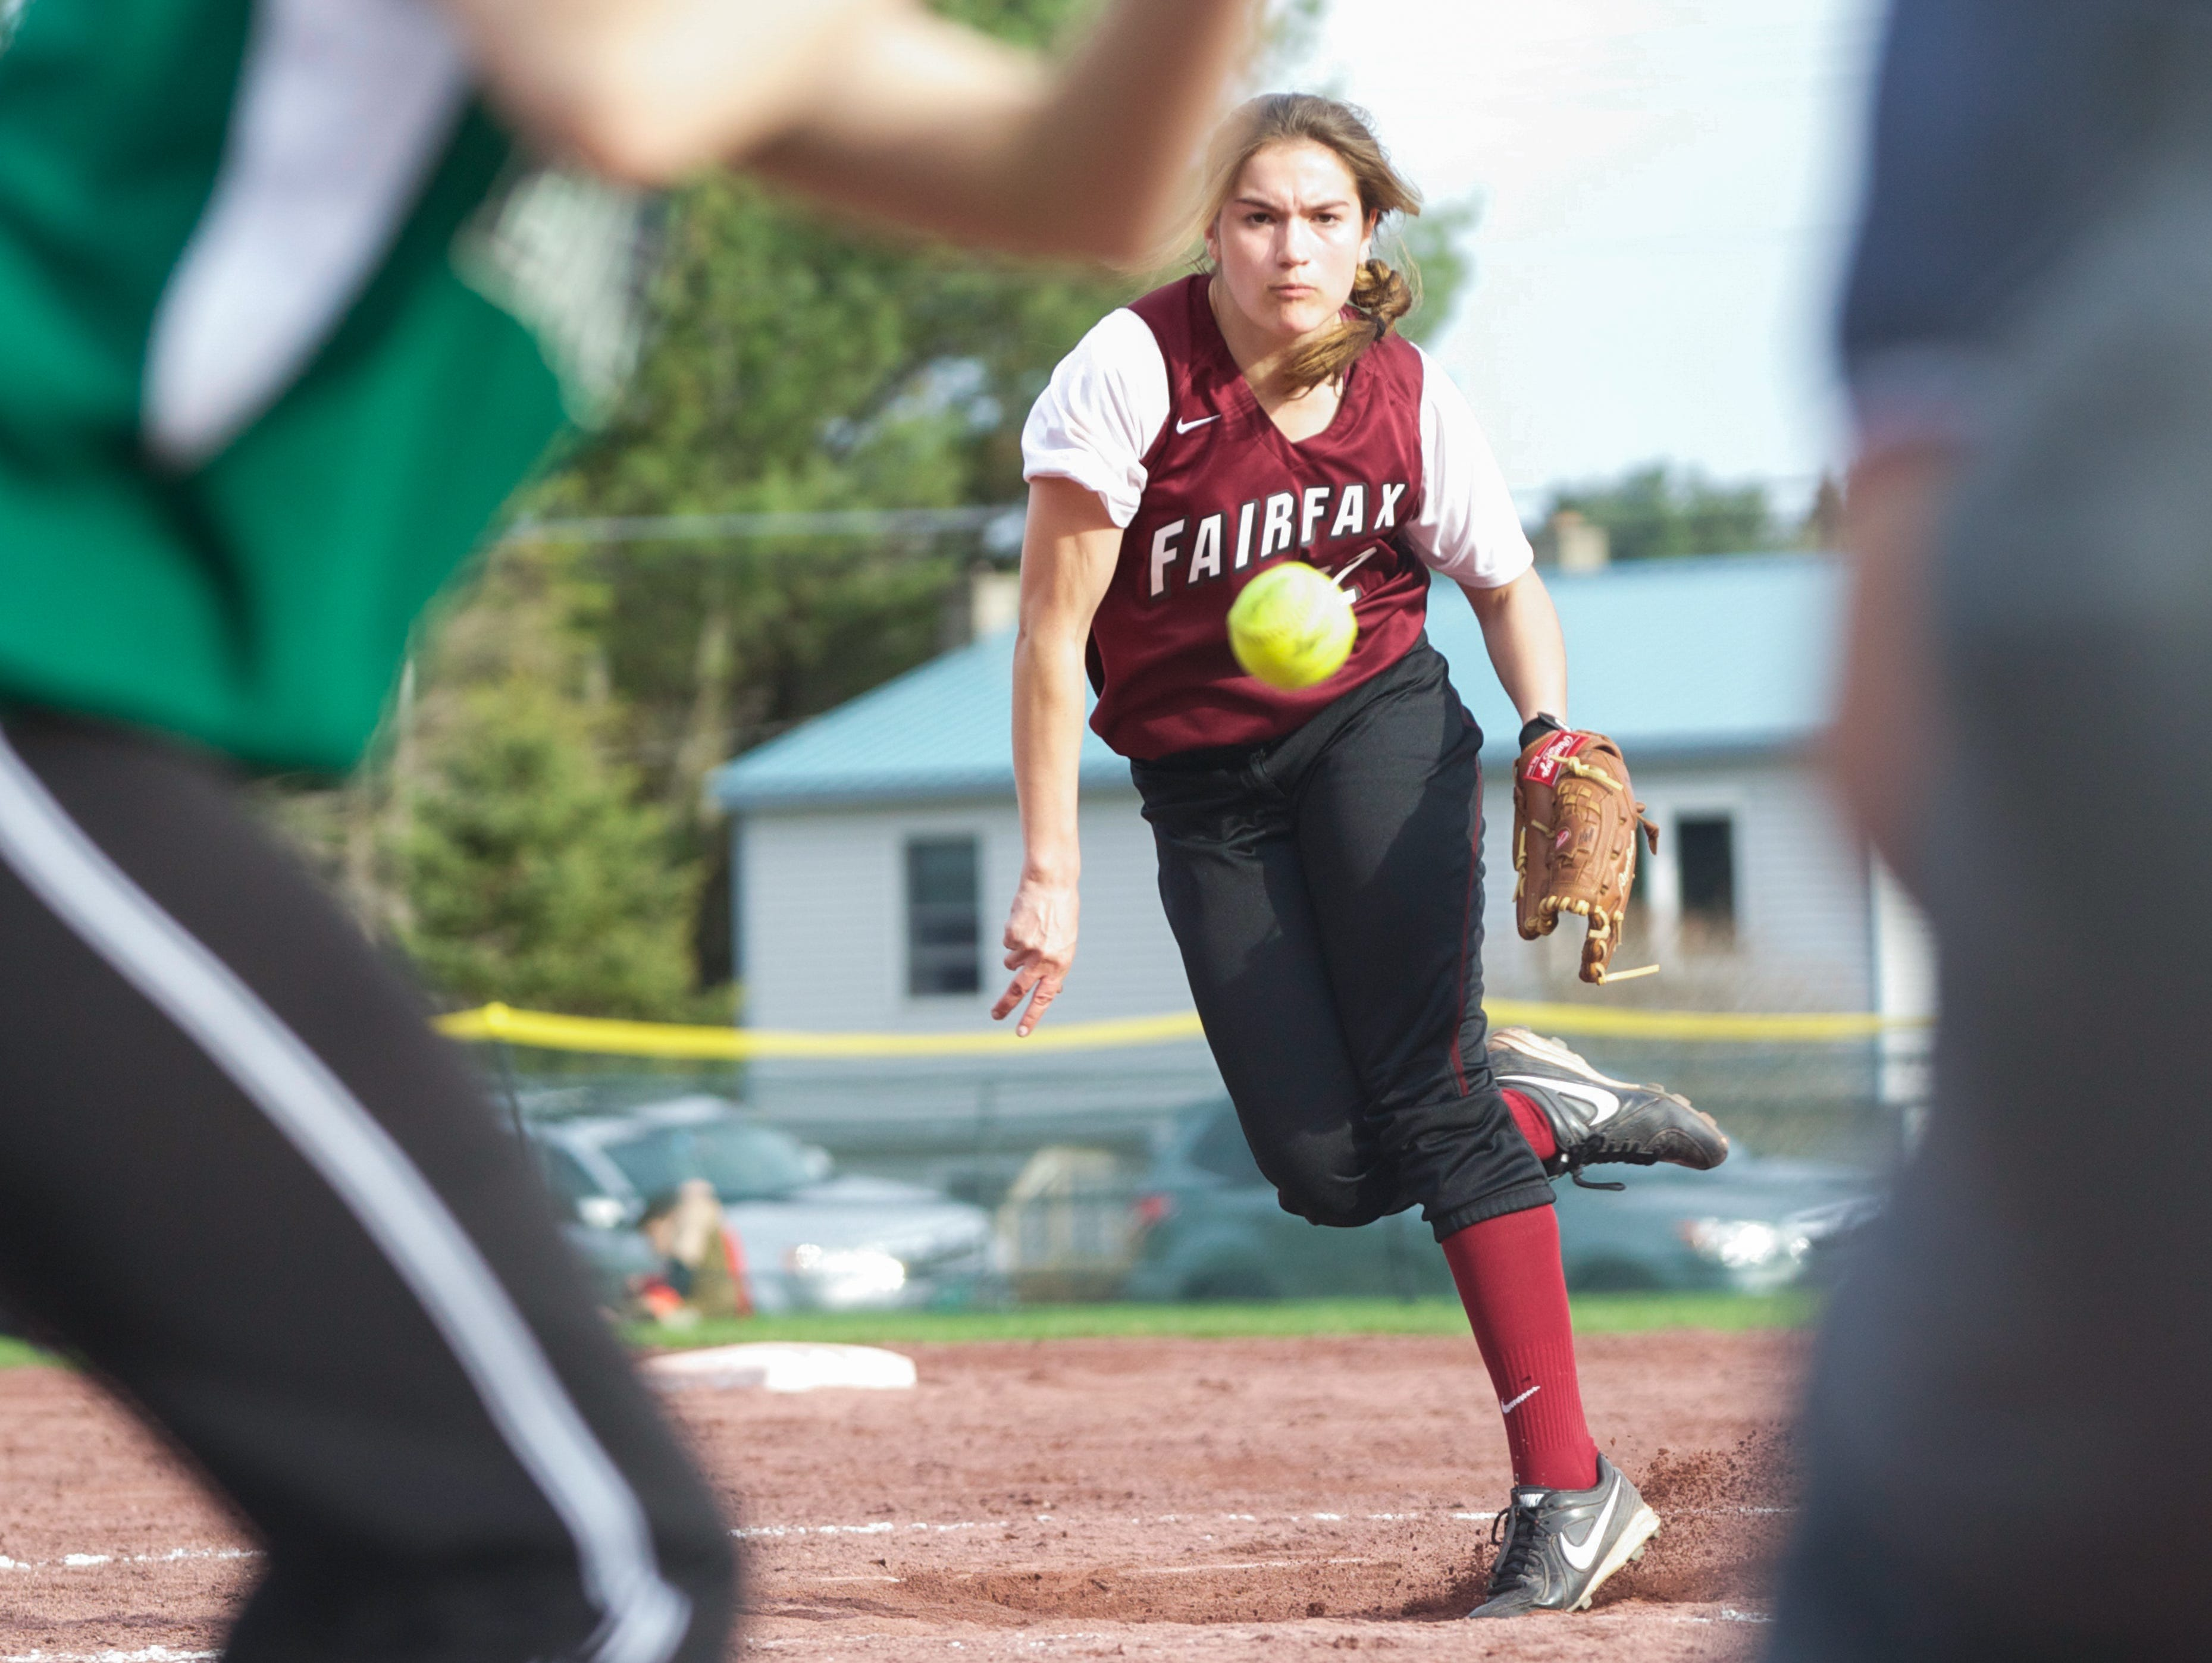 BFA-Fairfax's Gianna Trono fires in a pitch as the Bullets hosted Enosburg on Tuesday. Fairfax went on to win the game 11-1.